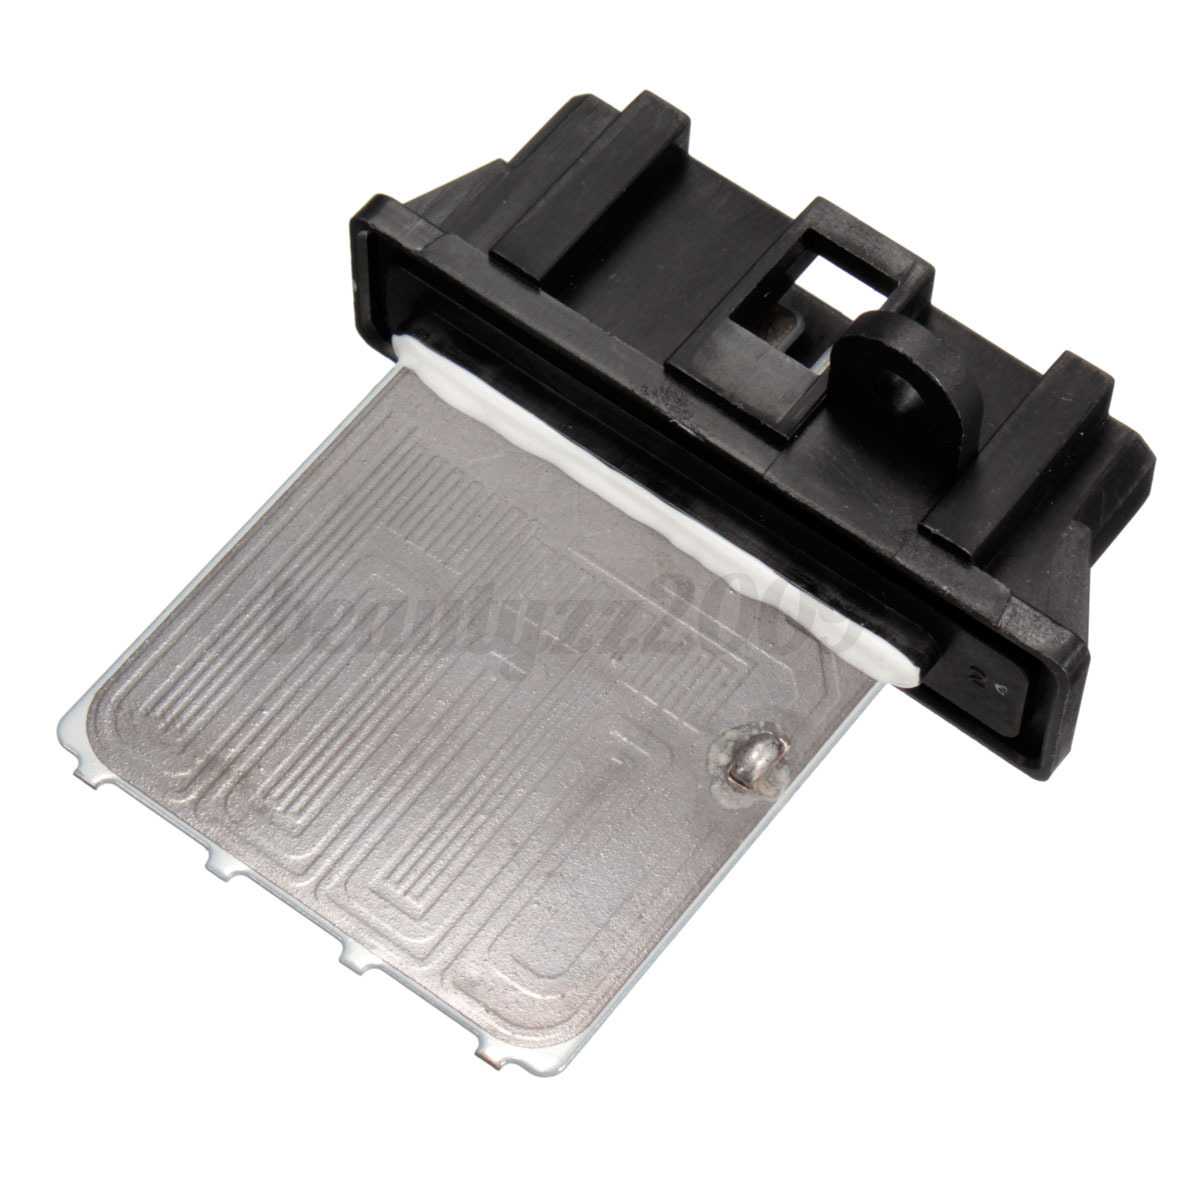 Nissan Micra Fuse Box Layout: Blower Fan Motor Heater Resisitor For Nissan Micra K11